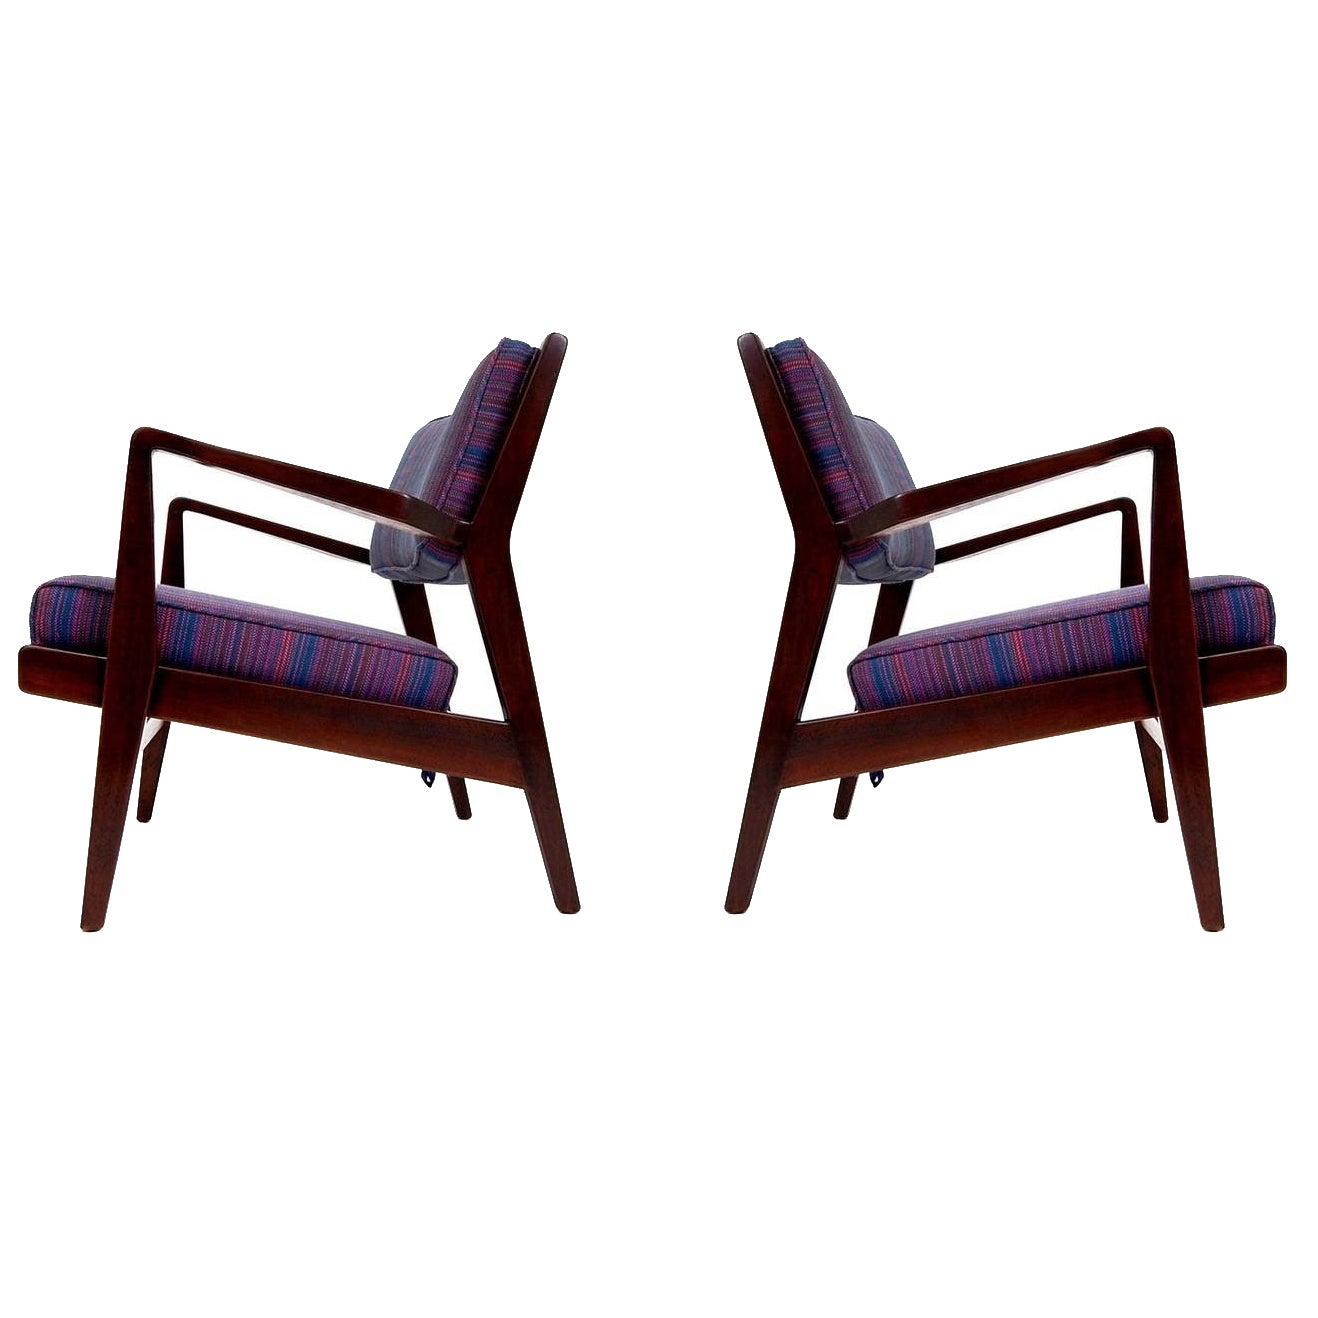 Pair of Jens Risom Lounge Chairs in Walnut